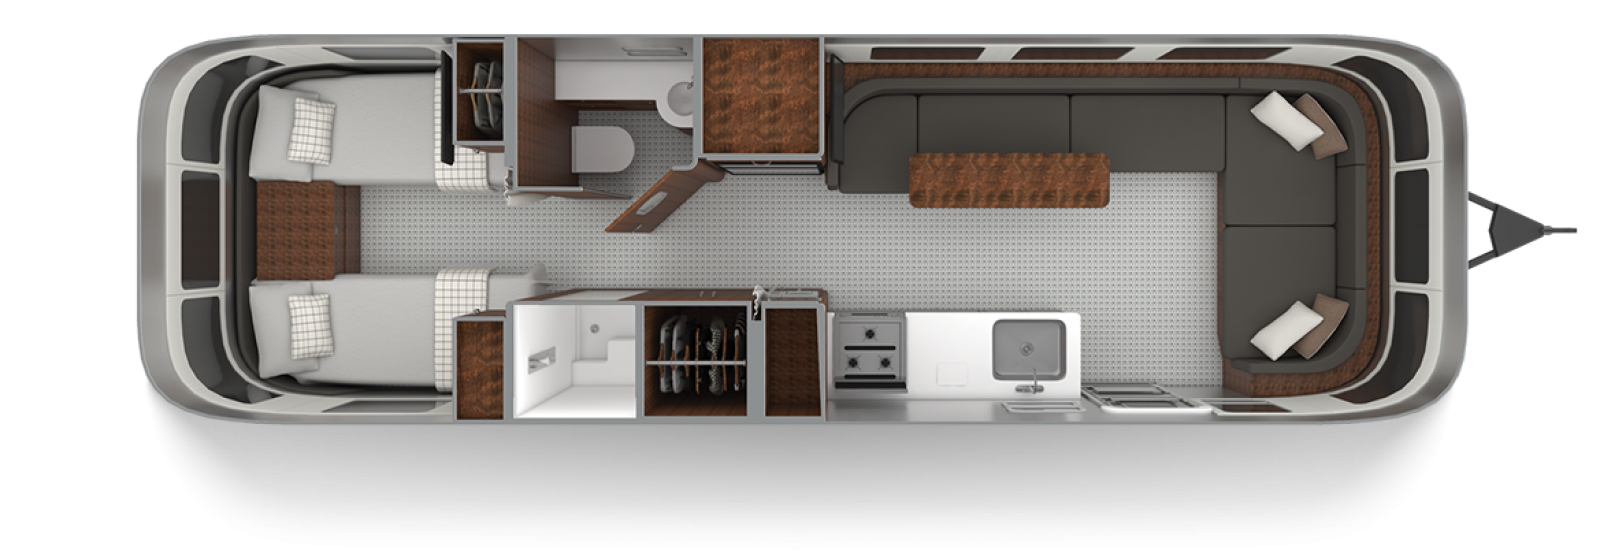 Airstream Globetrotter 30RB Twin Dublin Slate Floor Plan